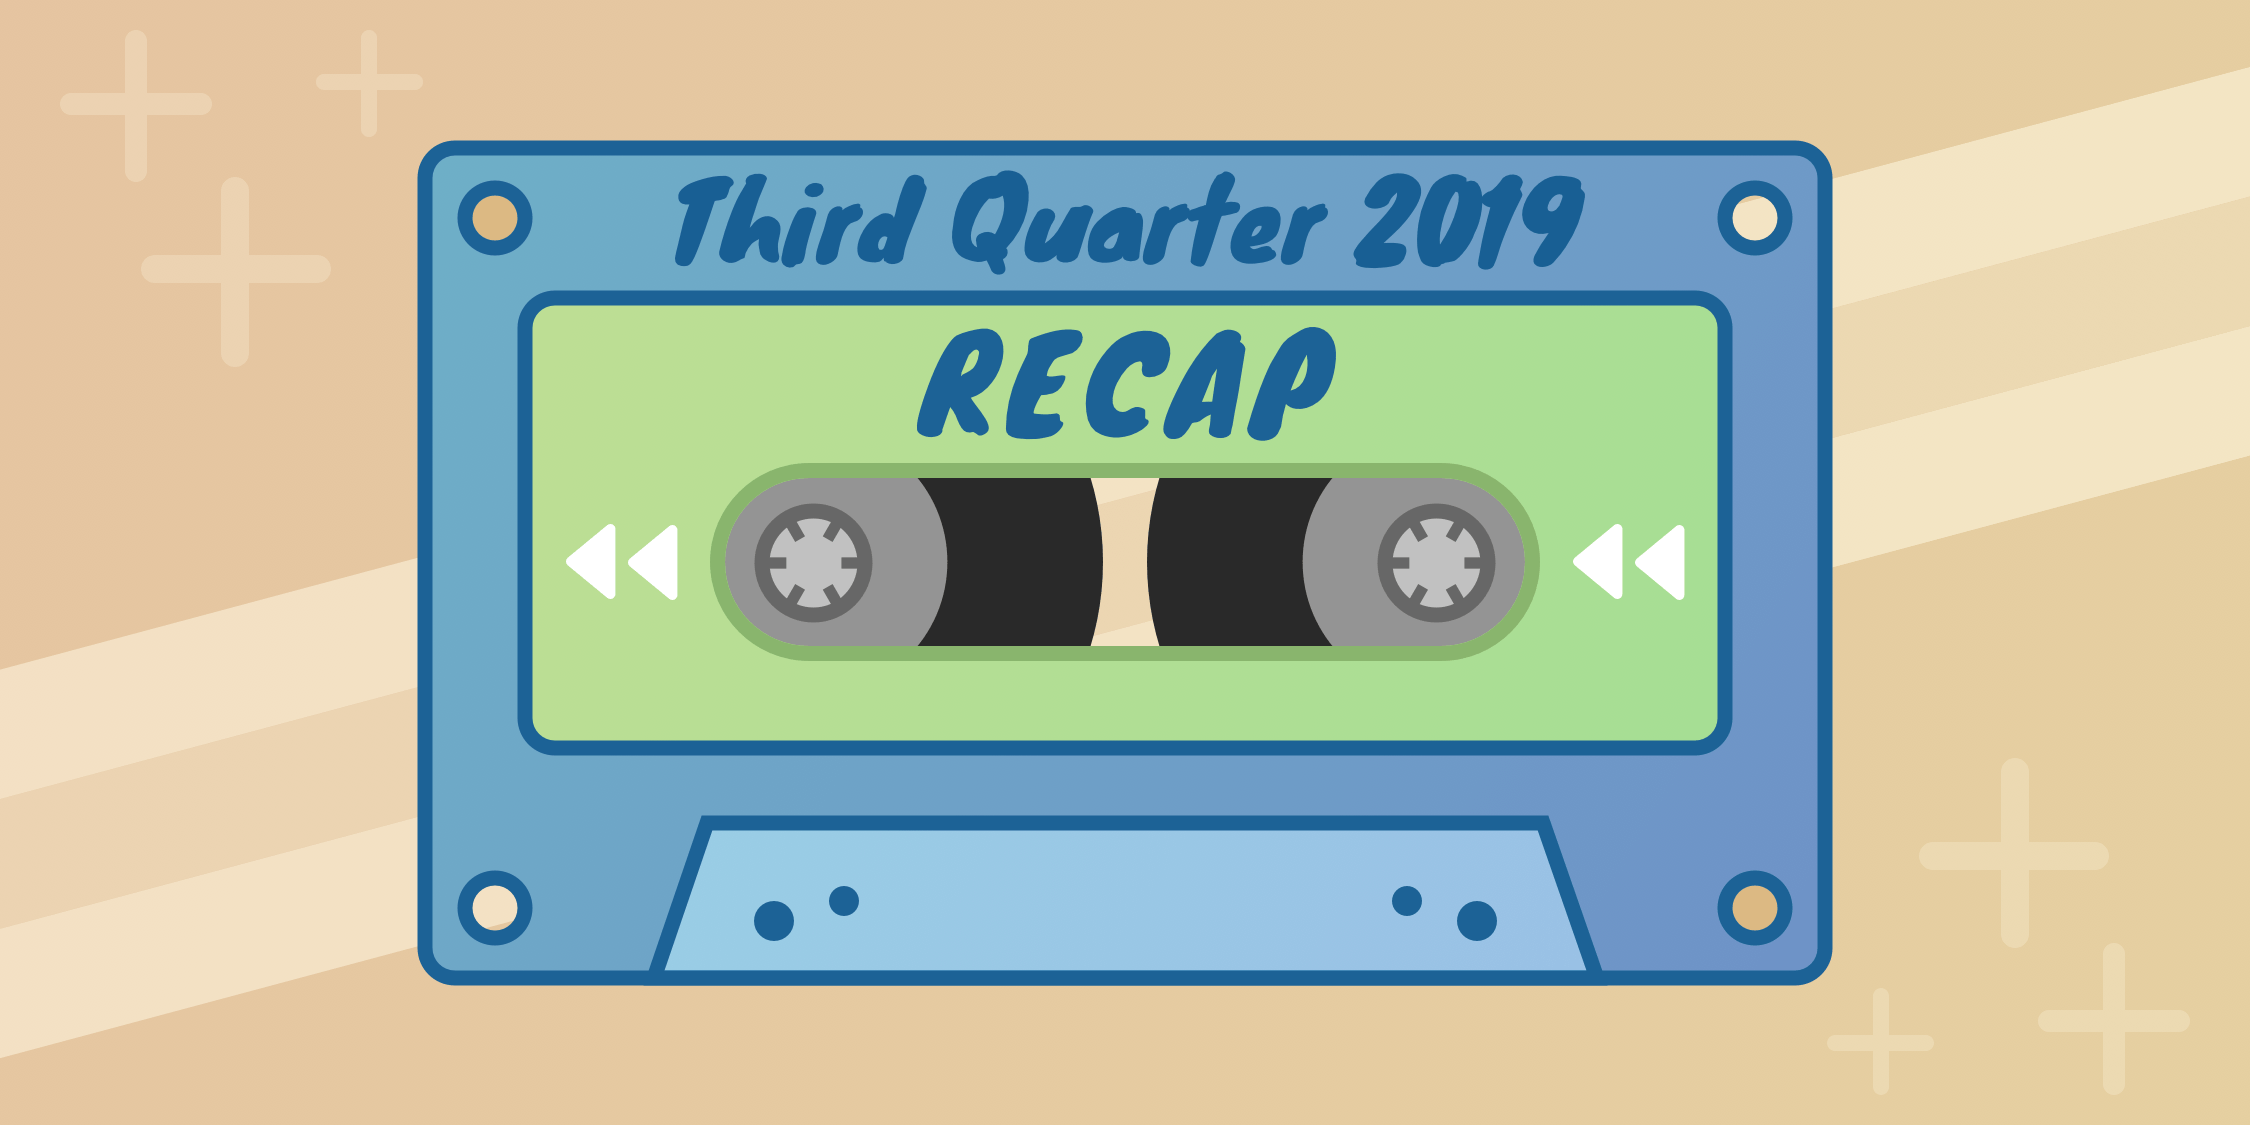 Third quarter recap